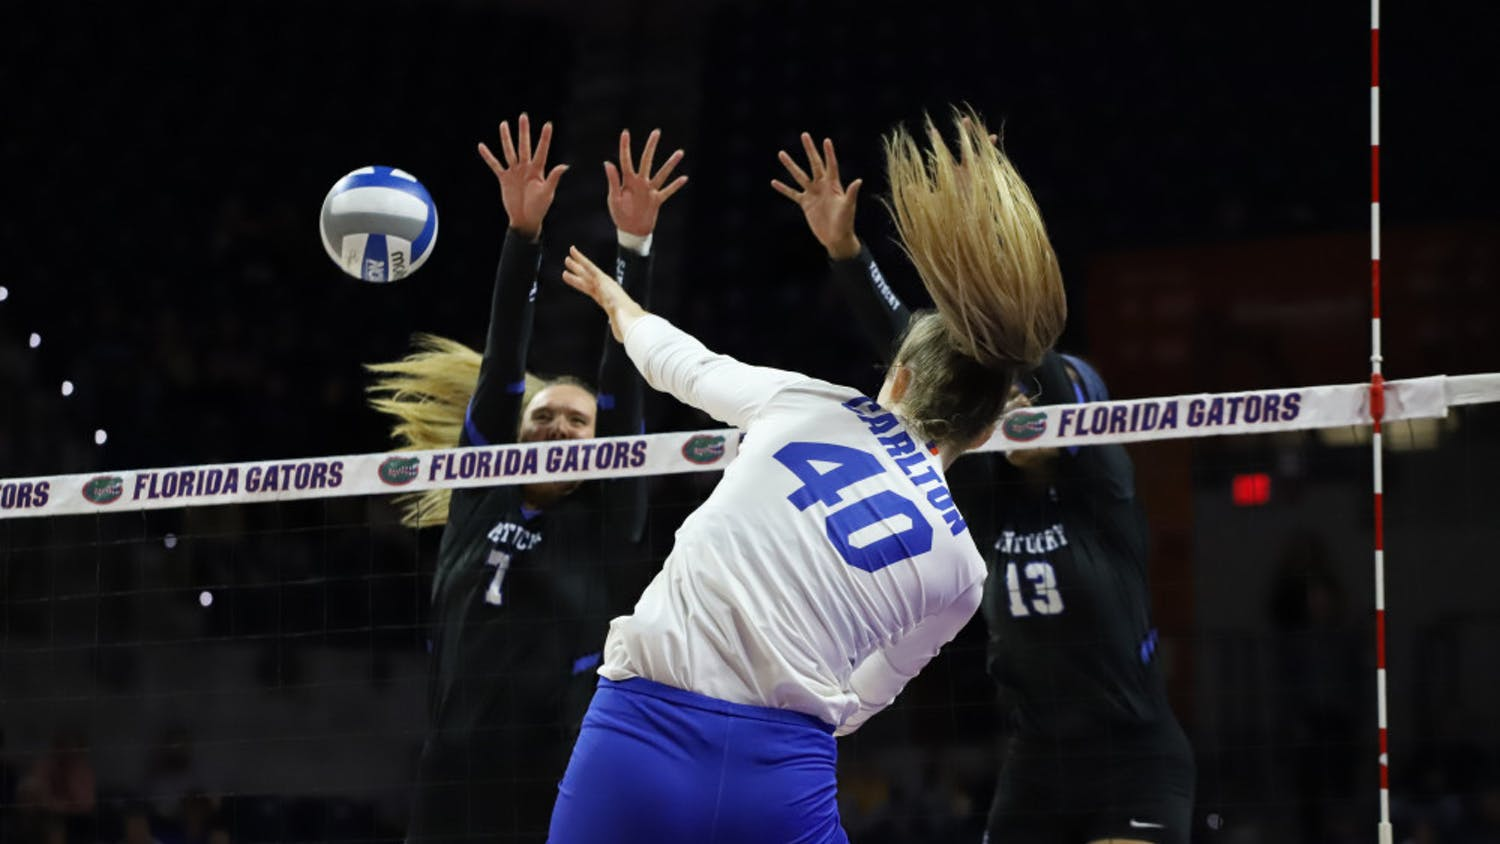 UF redshirt senior Holly Carlton highlighted her team's focus on controlling serves.